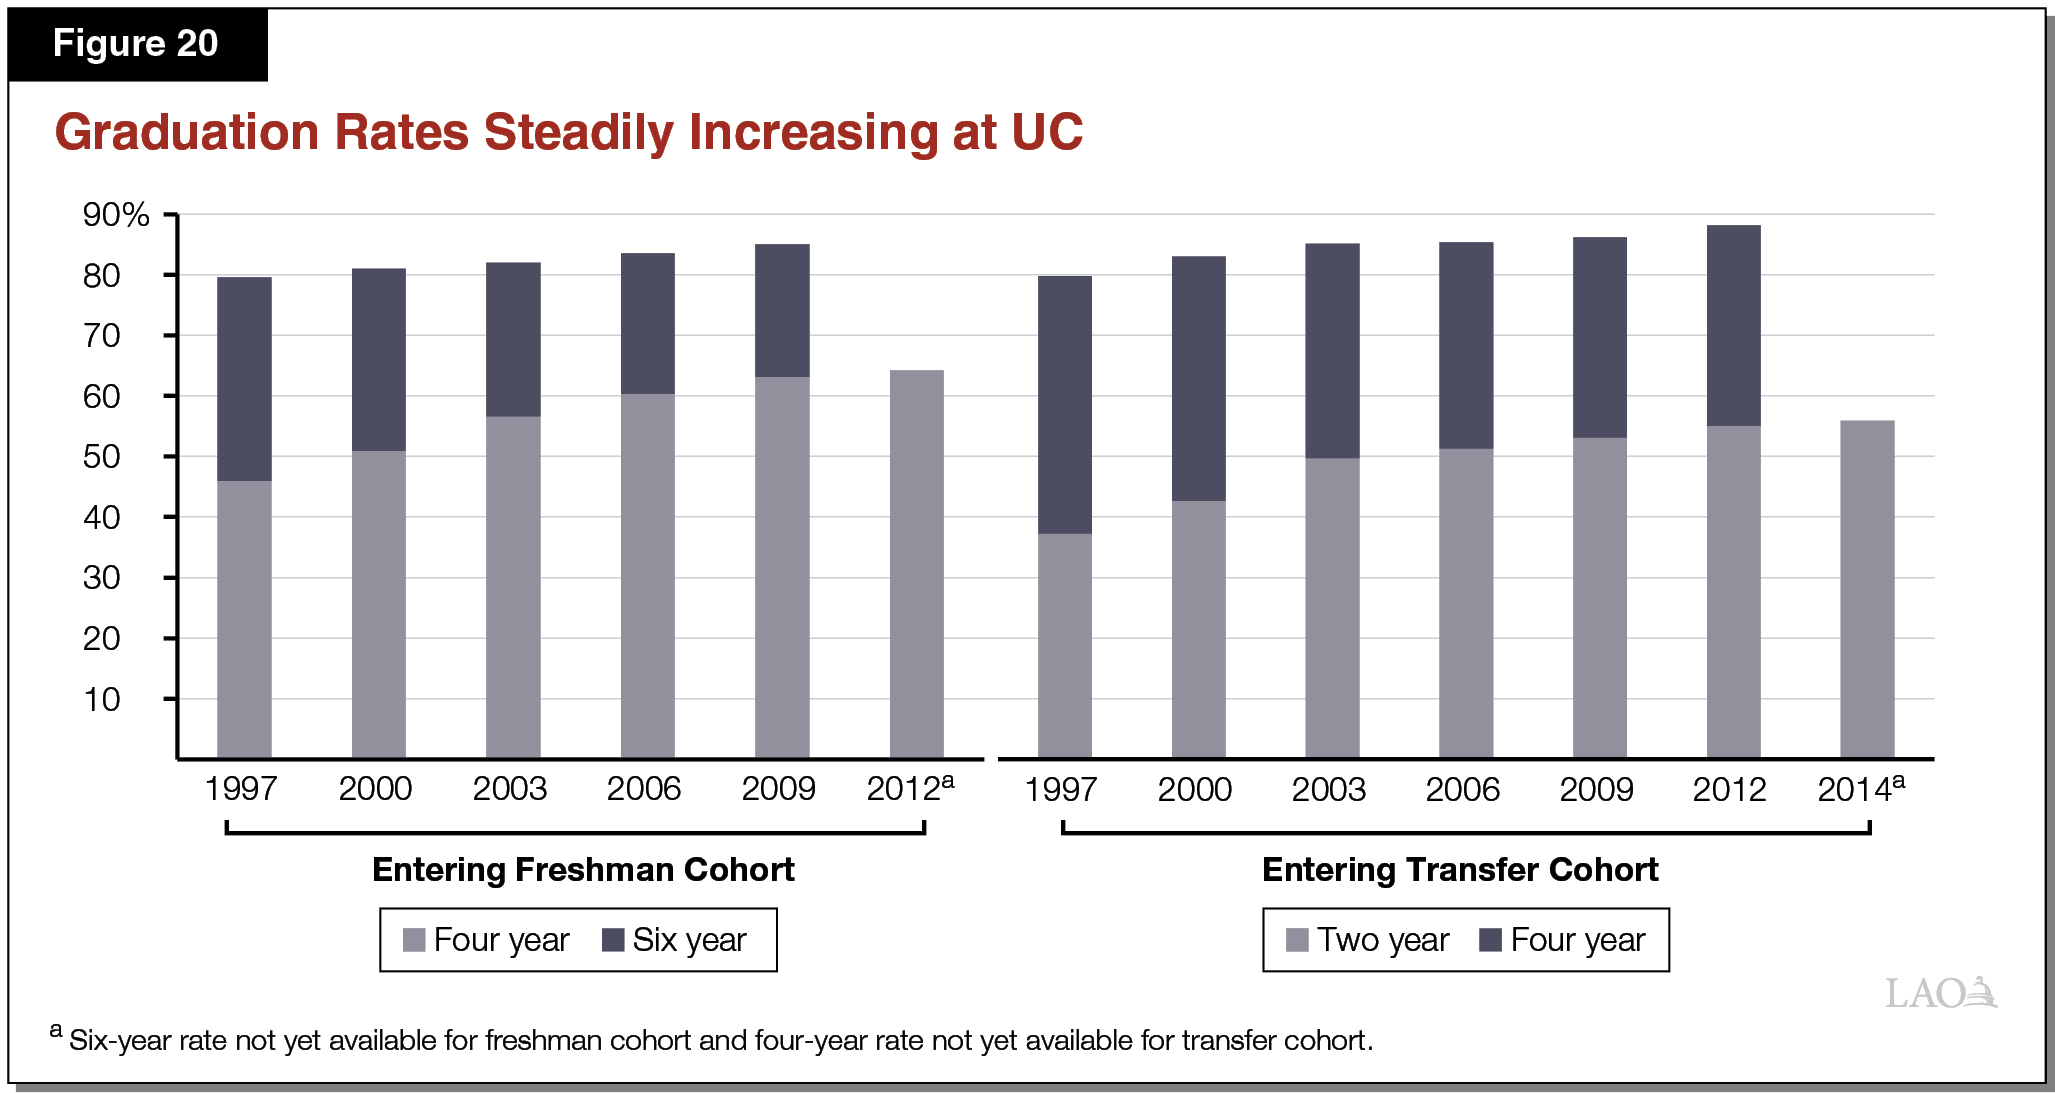 Figure 20 - Graduation Rates Steadily Increasing at UC